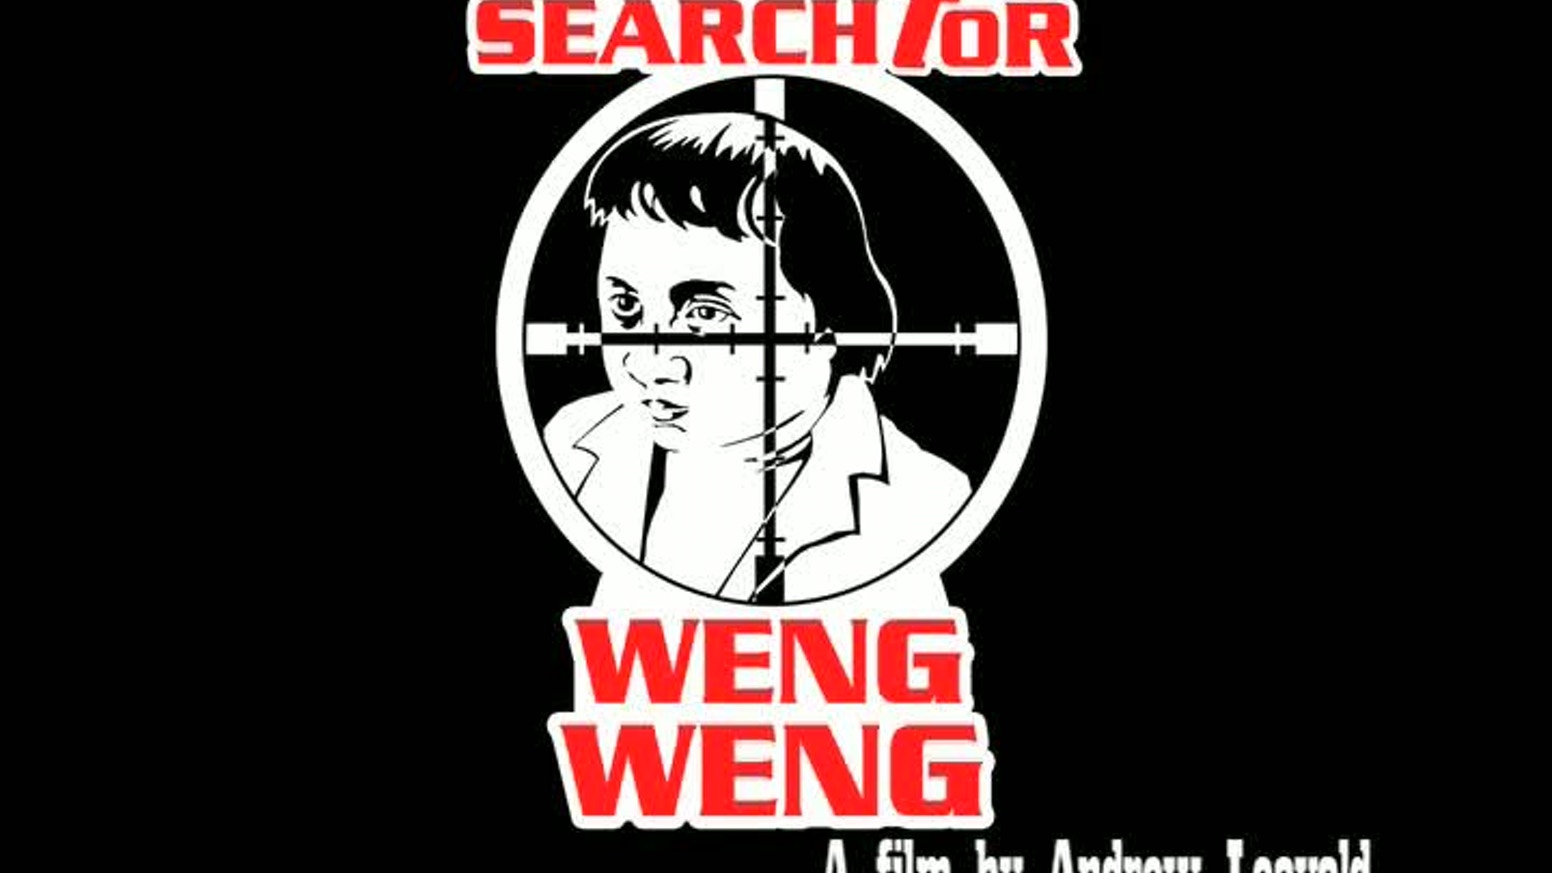 Autor Santiago Porns Cormat the search for weng wengandrew leavold — kickstarter